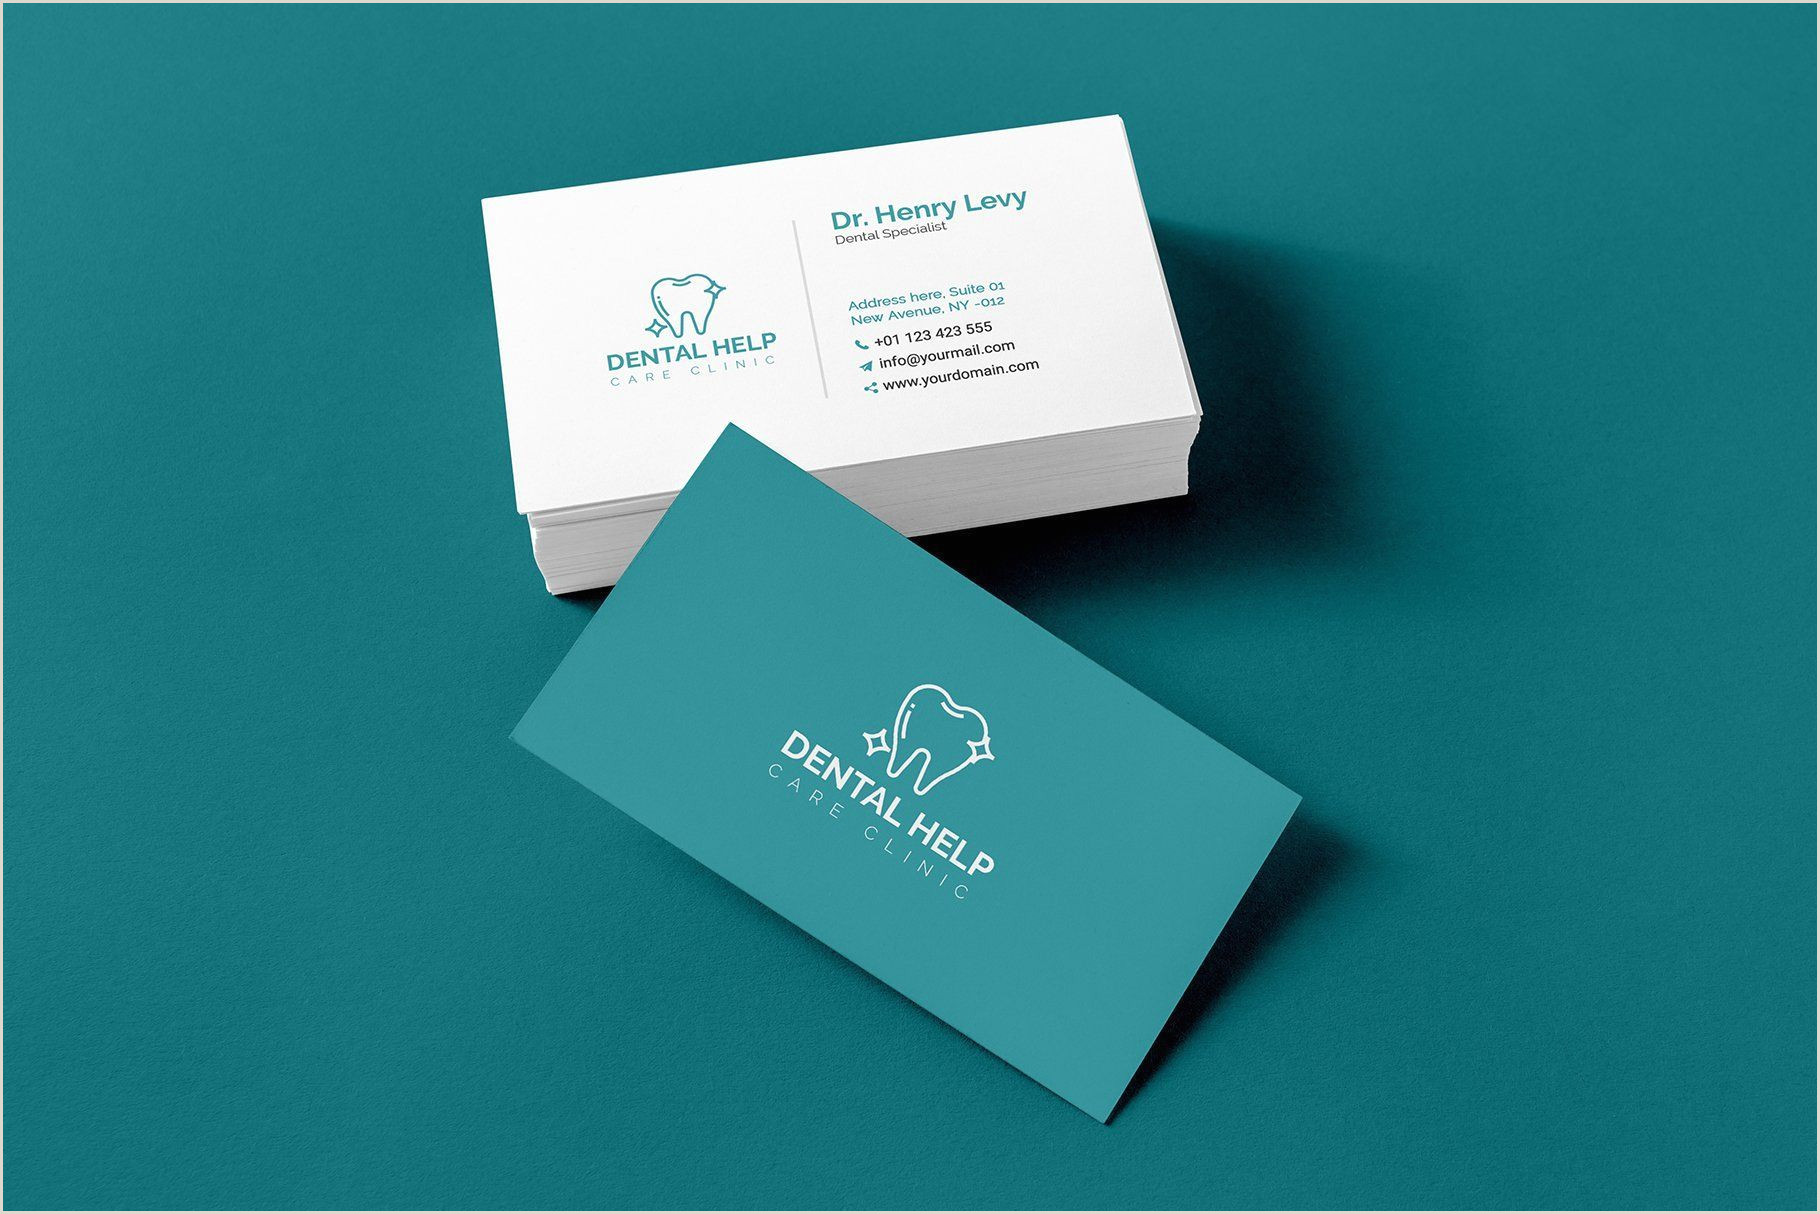 Business Cards Information Dentist Business Card Templates In 2020